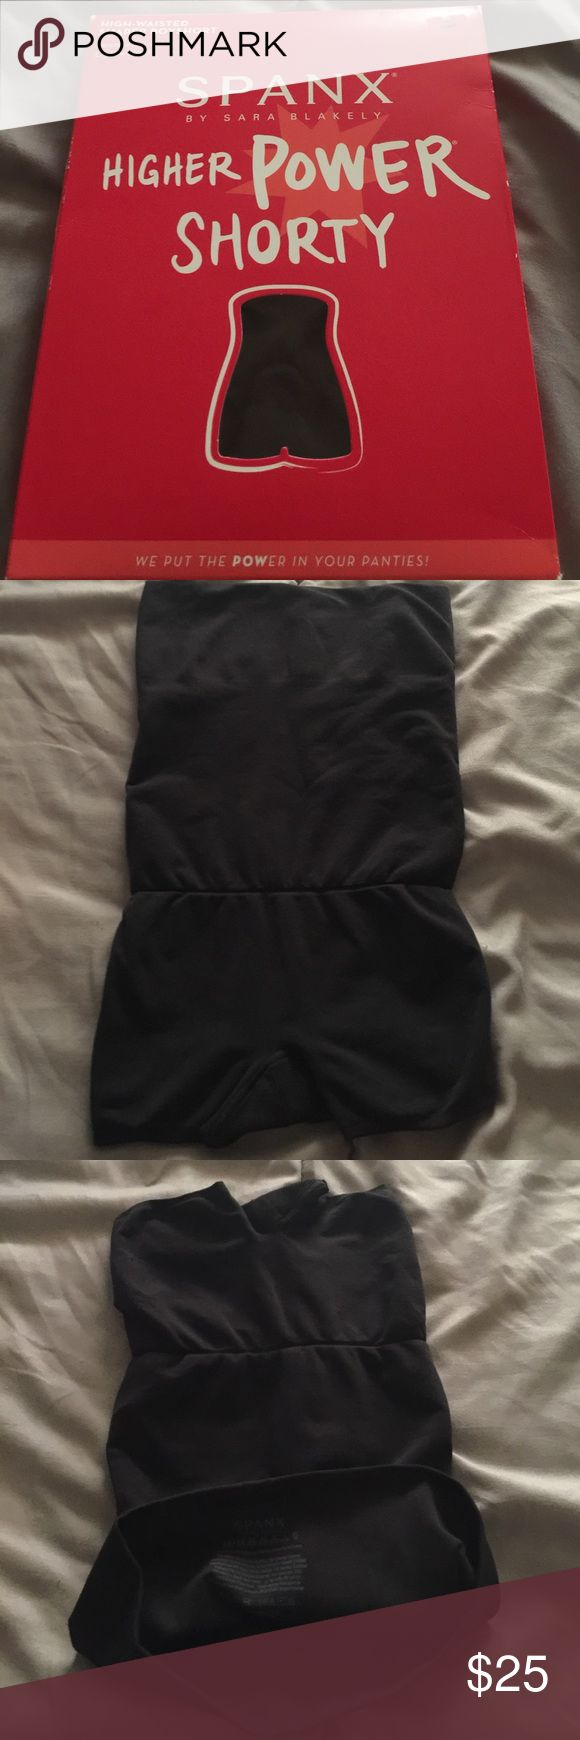 Spanx higher power Shorty High waisted boyshort M Seamless , Ultra soft , light weight , Size medium, weight 130-155 libras , waist 31-33 inches. Hips 38-40.5.Sorry no trades or modeling. Thanks for looking . Have a nice Day. SPANX Intimates & Sleepwear Shapewear